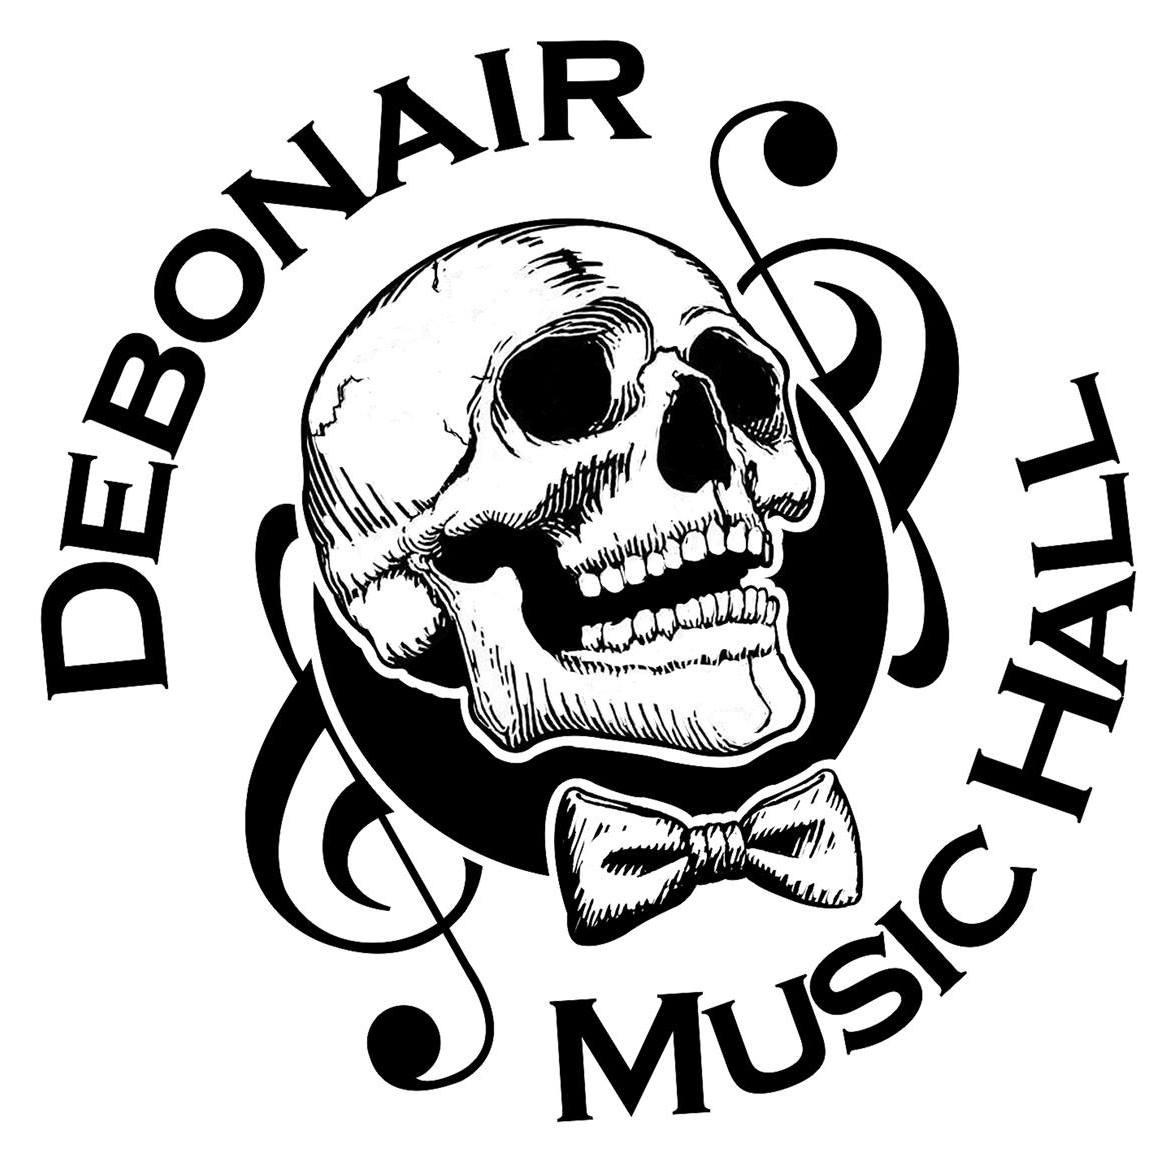 Debonair Music Hall